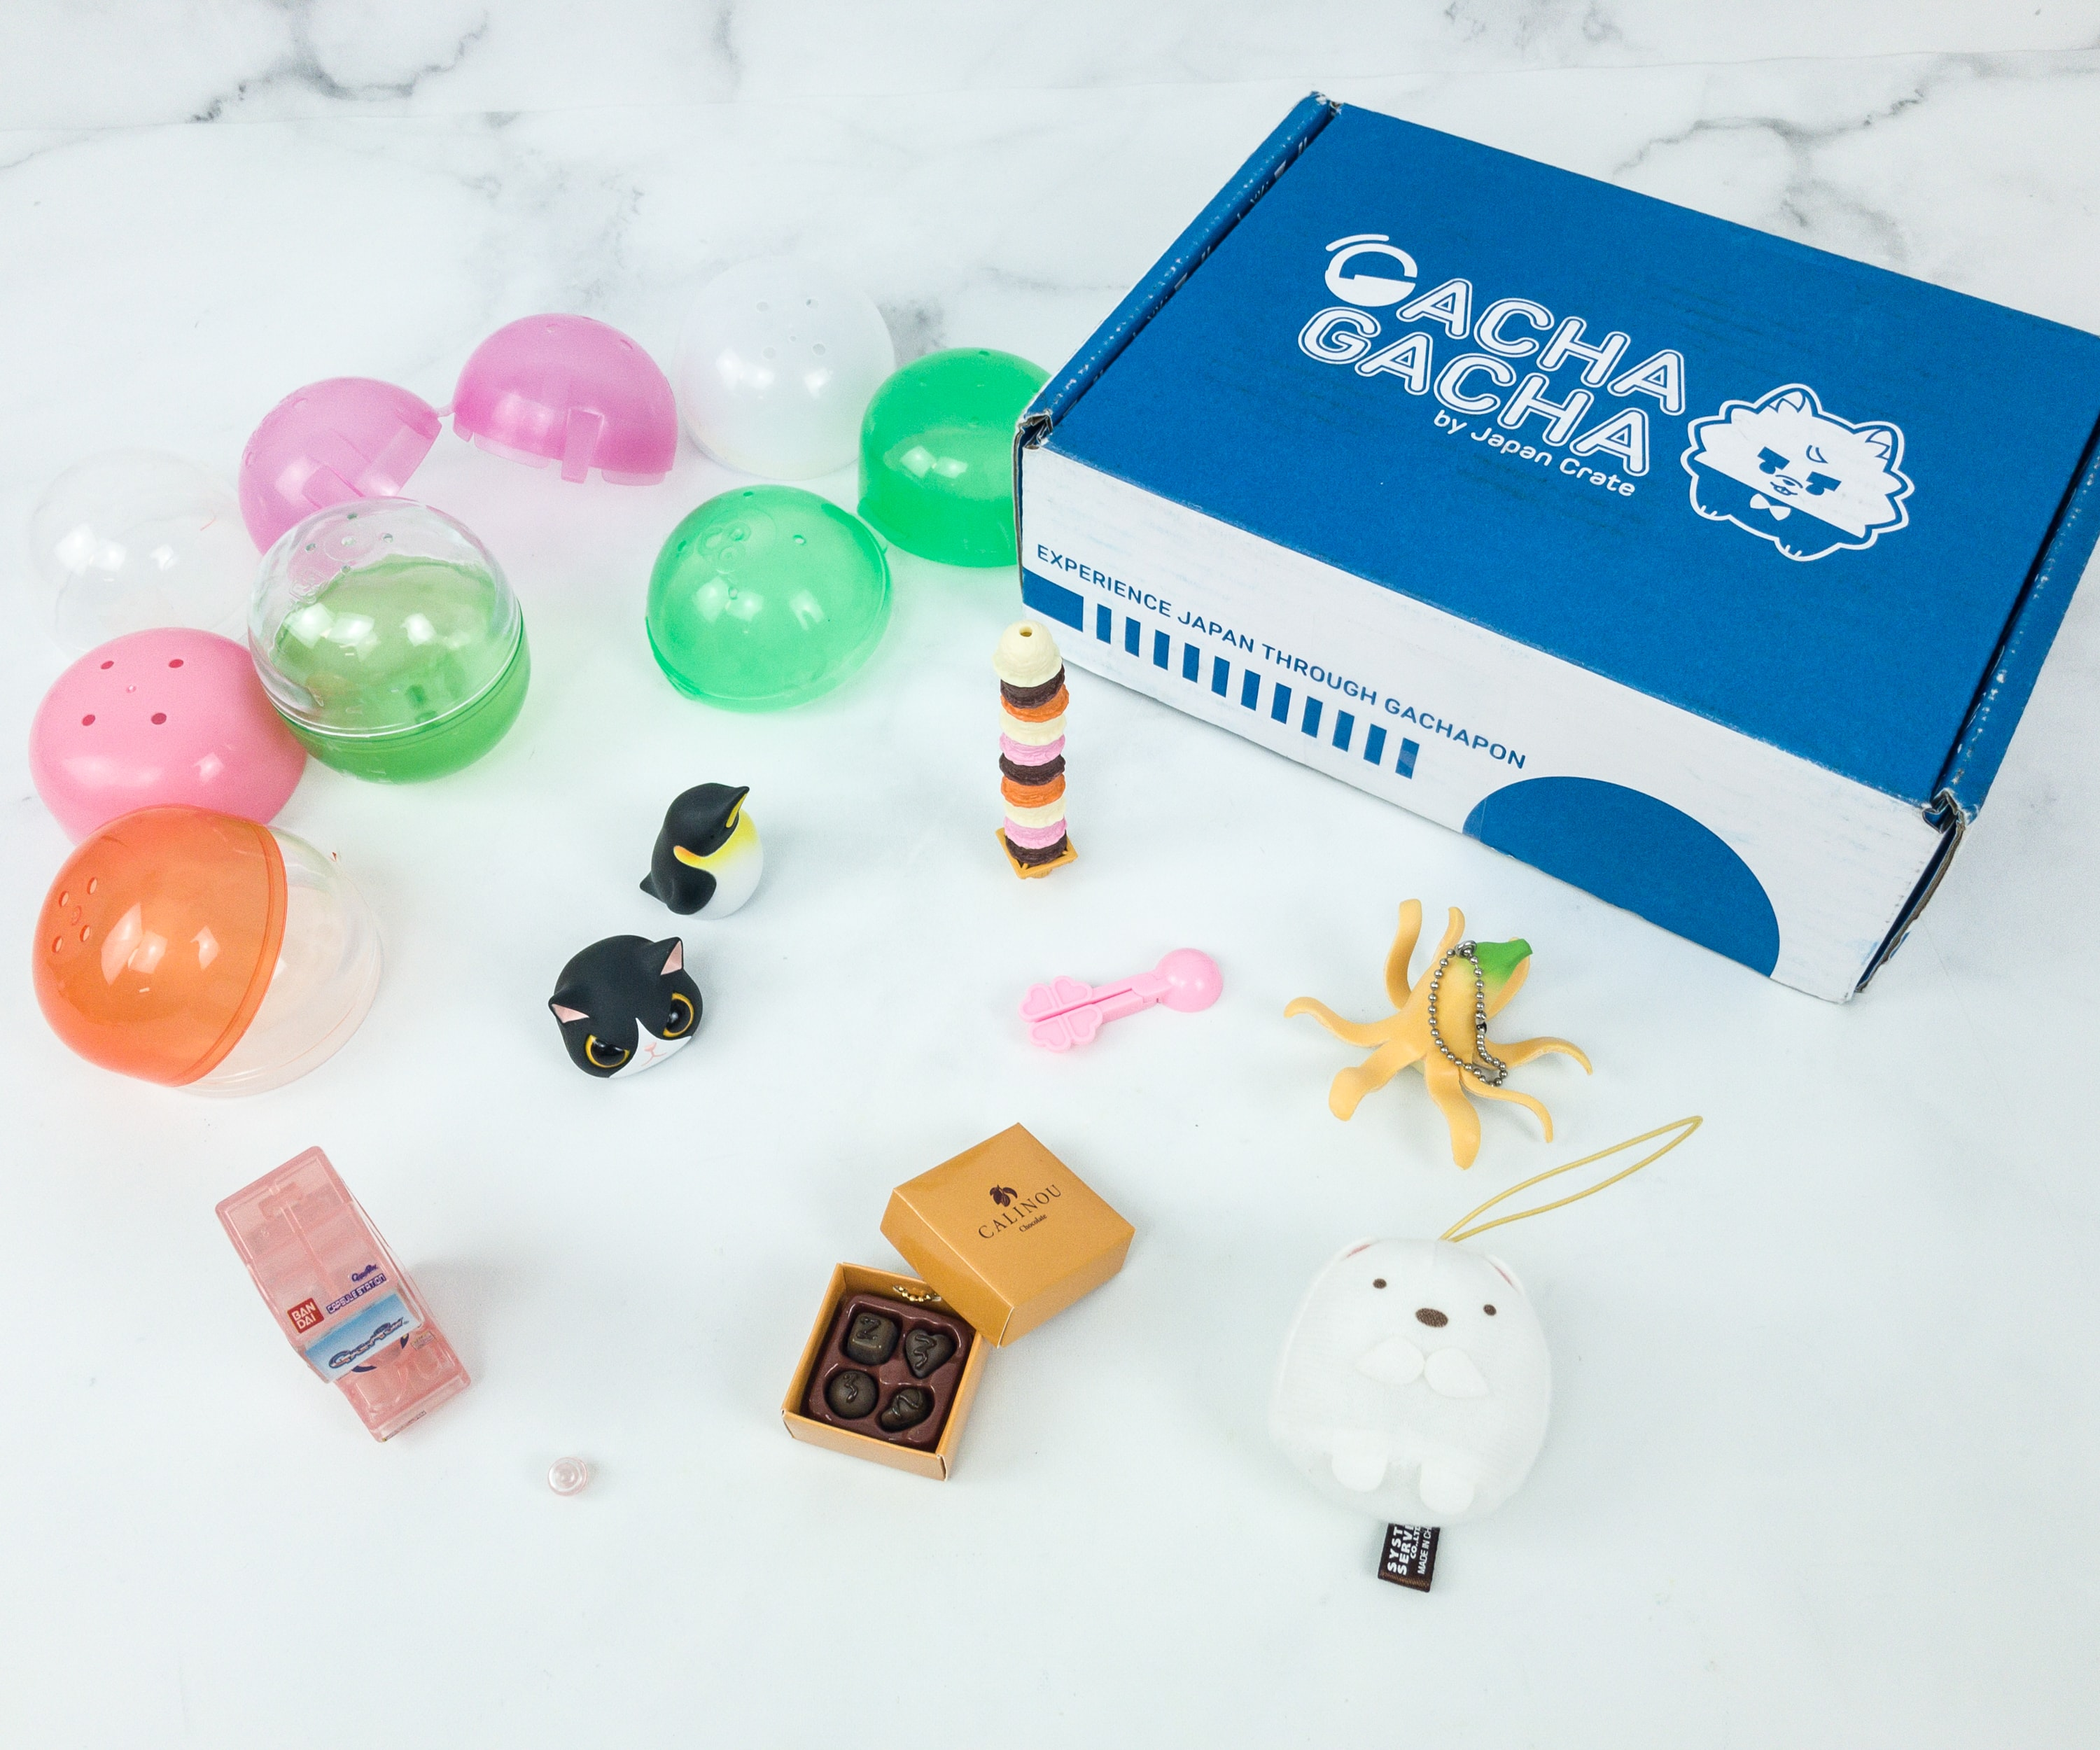 Gacha Gacha Crate March 2019 Subscription Box Review + Coupon